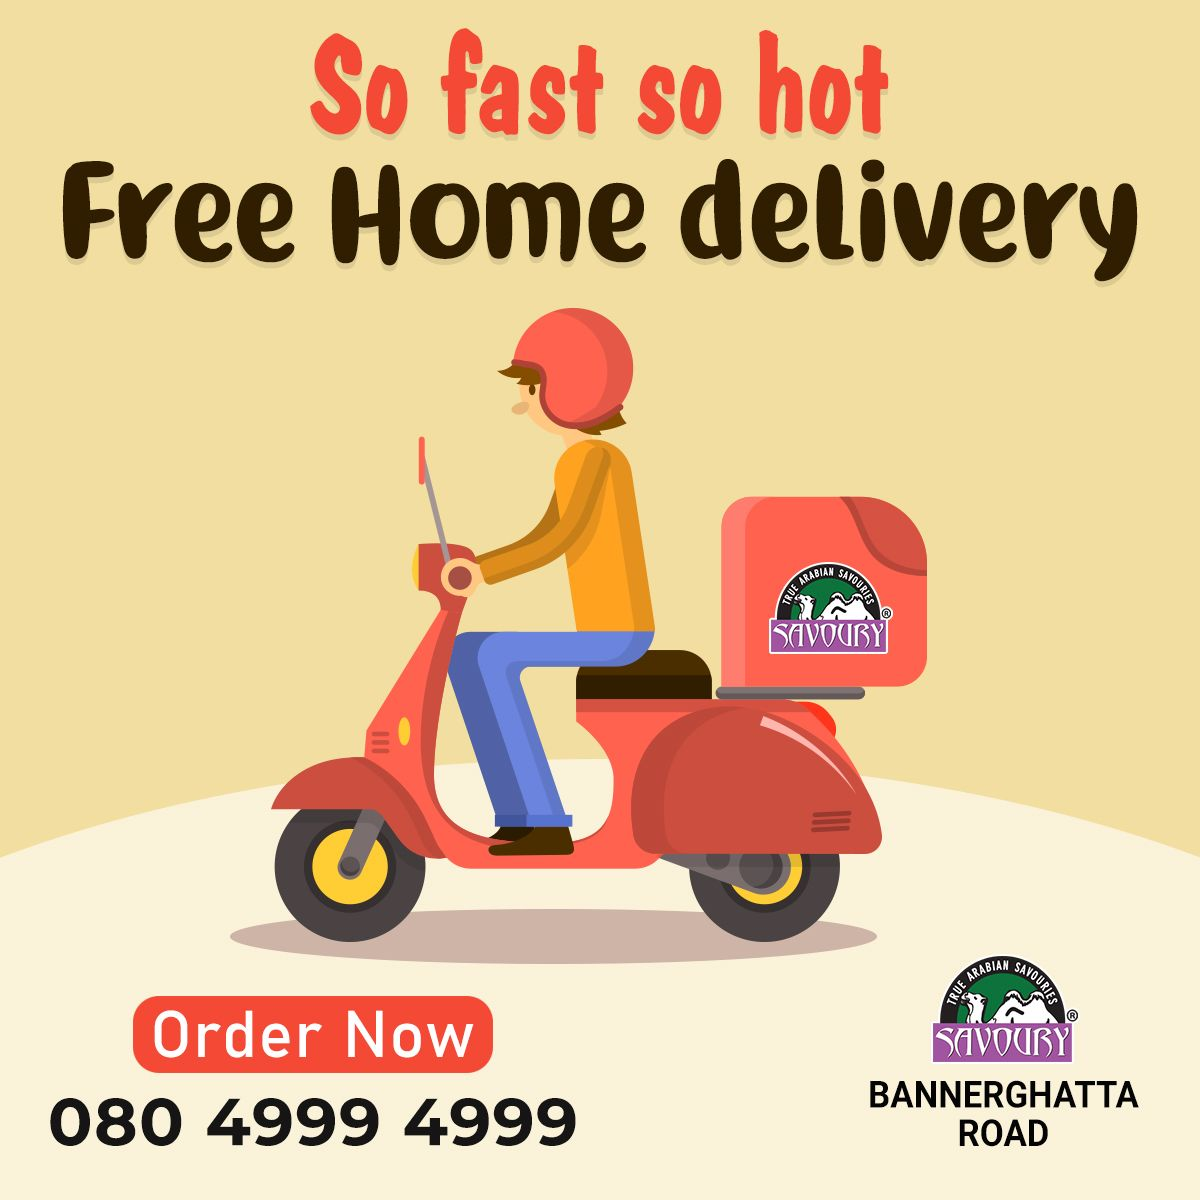 No need to pay extra charges for home delivery at savoury